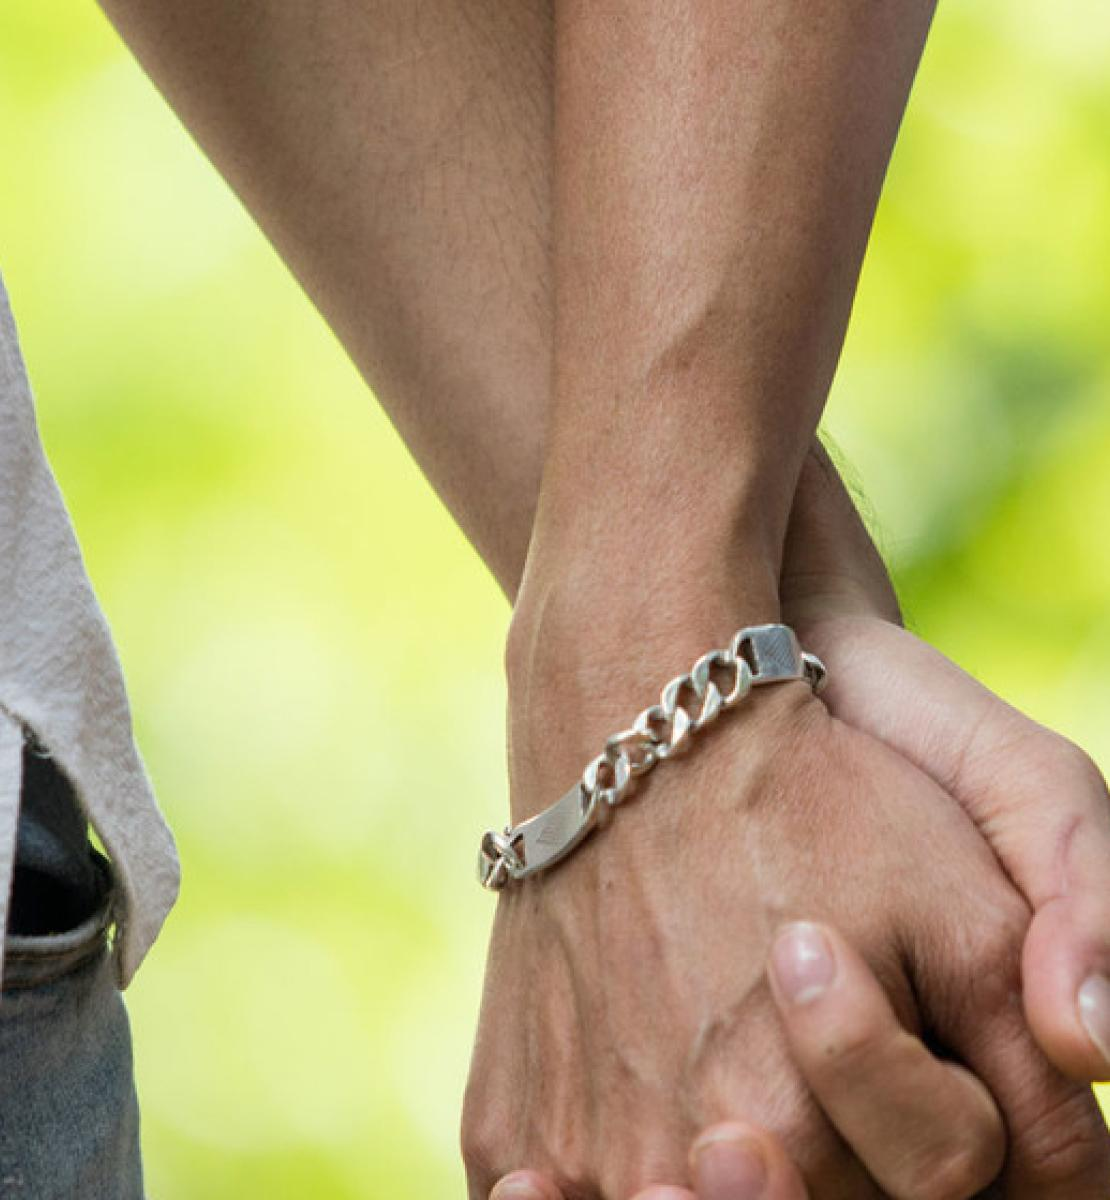 Close up image of two people, wearing jeans and light dress shirts, holding hands.